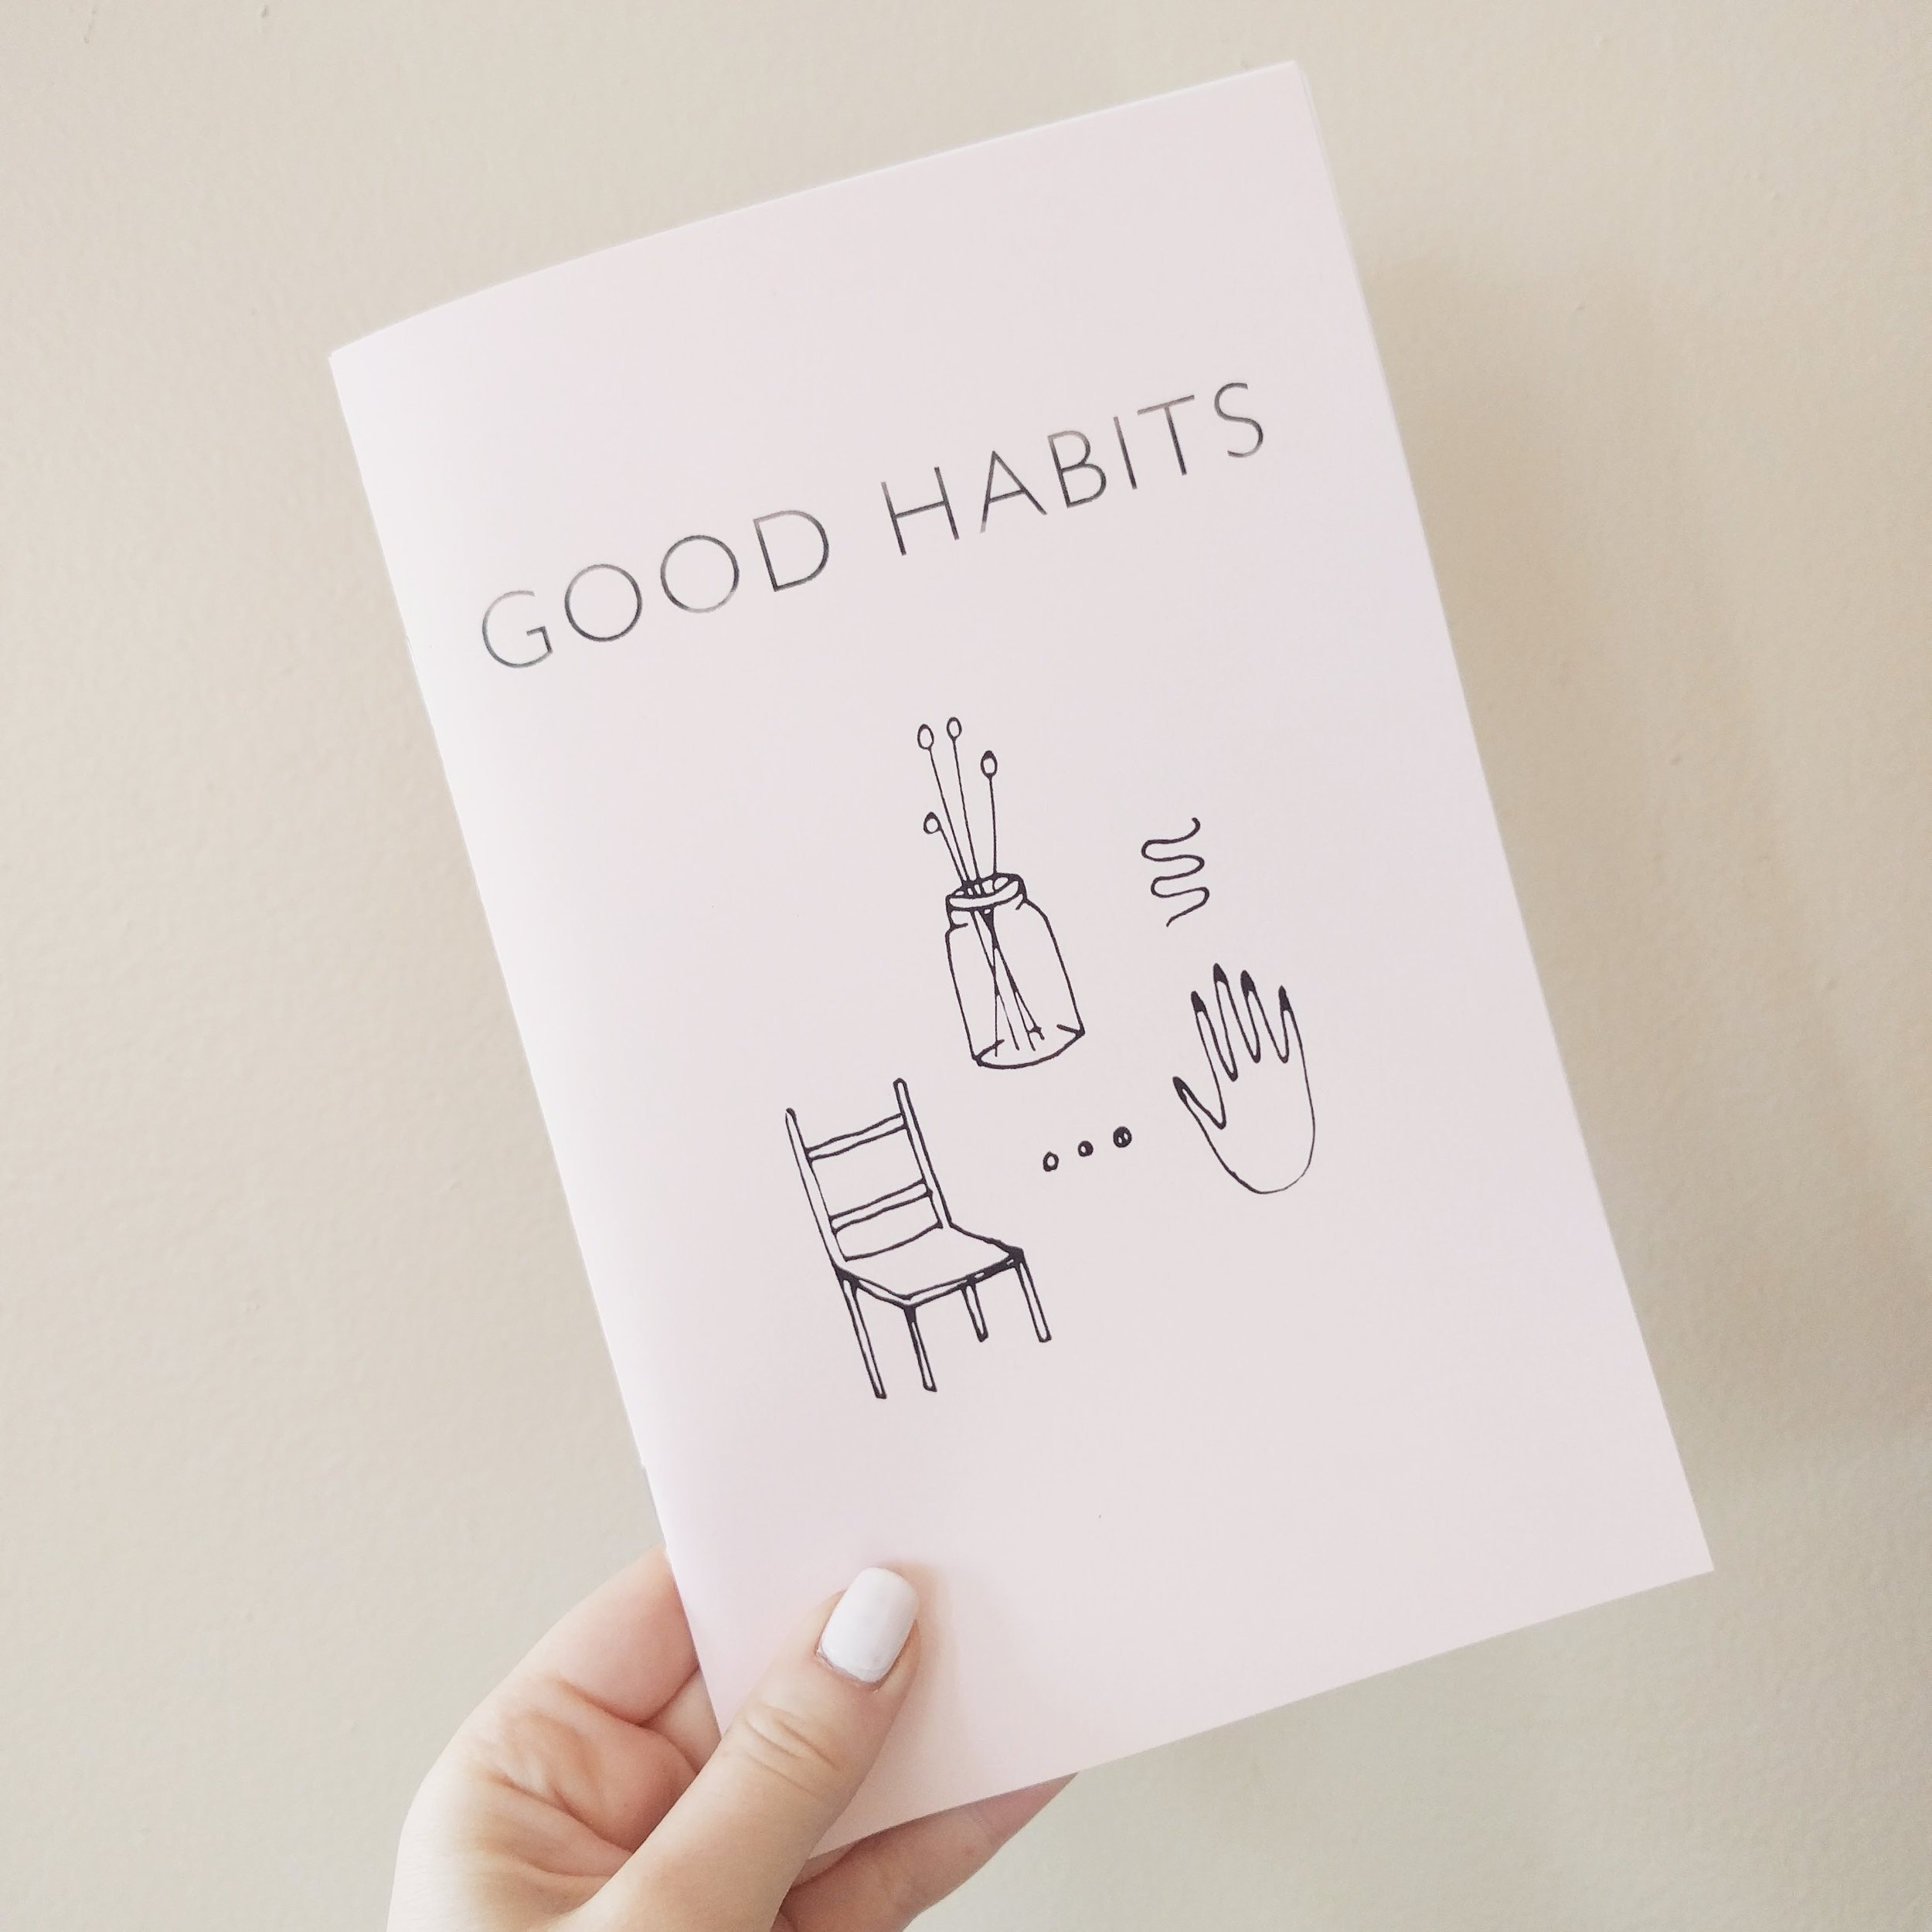 freiman_danielle_goodhabits_vol3.jpg